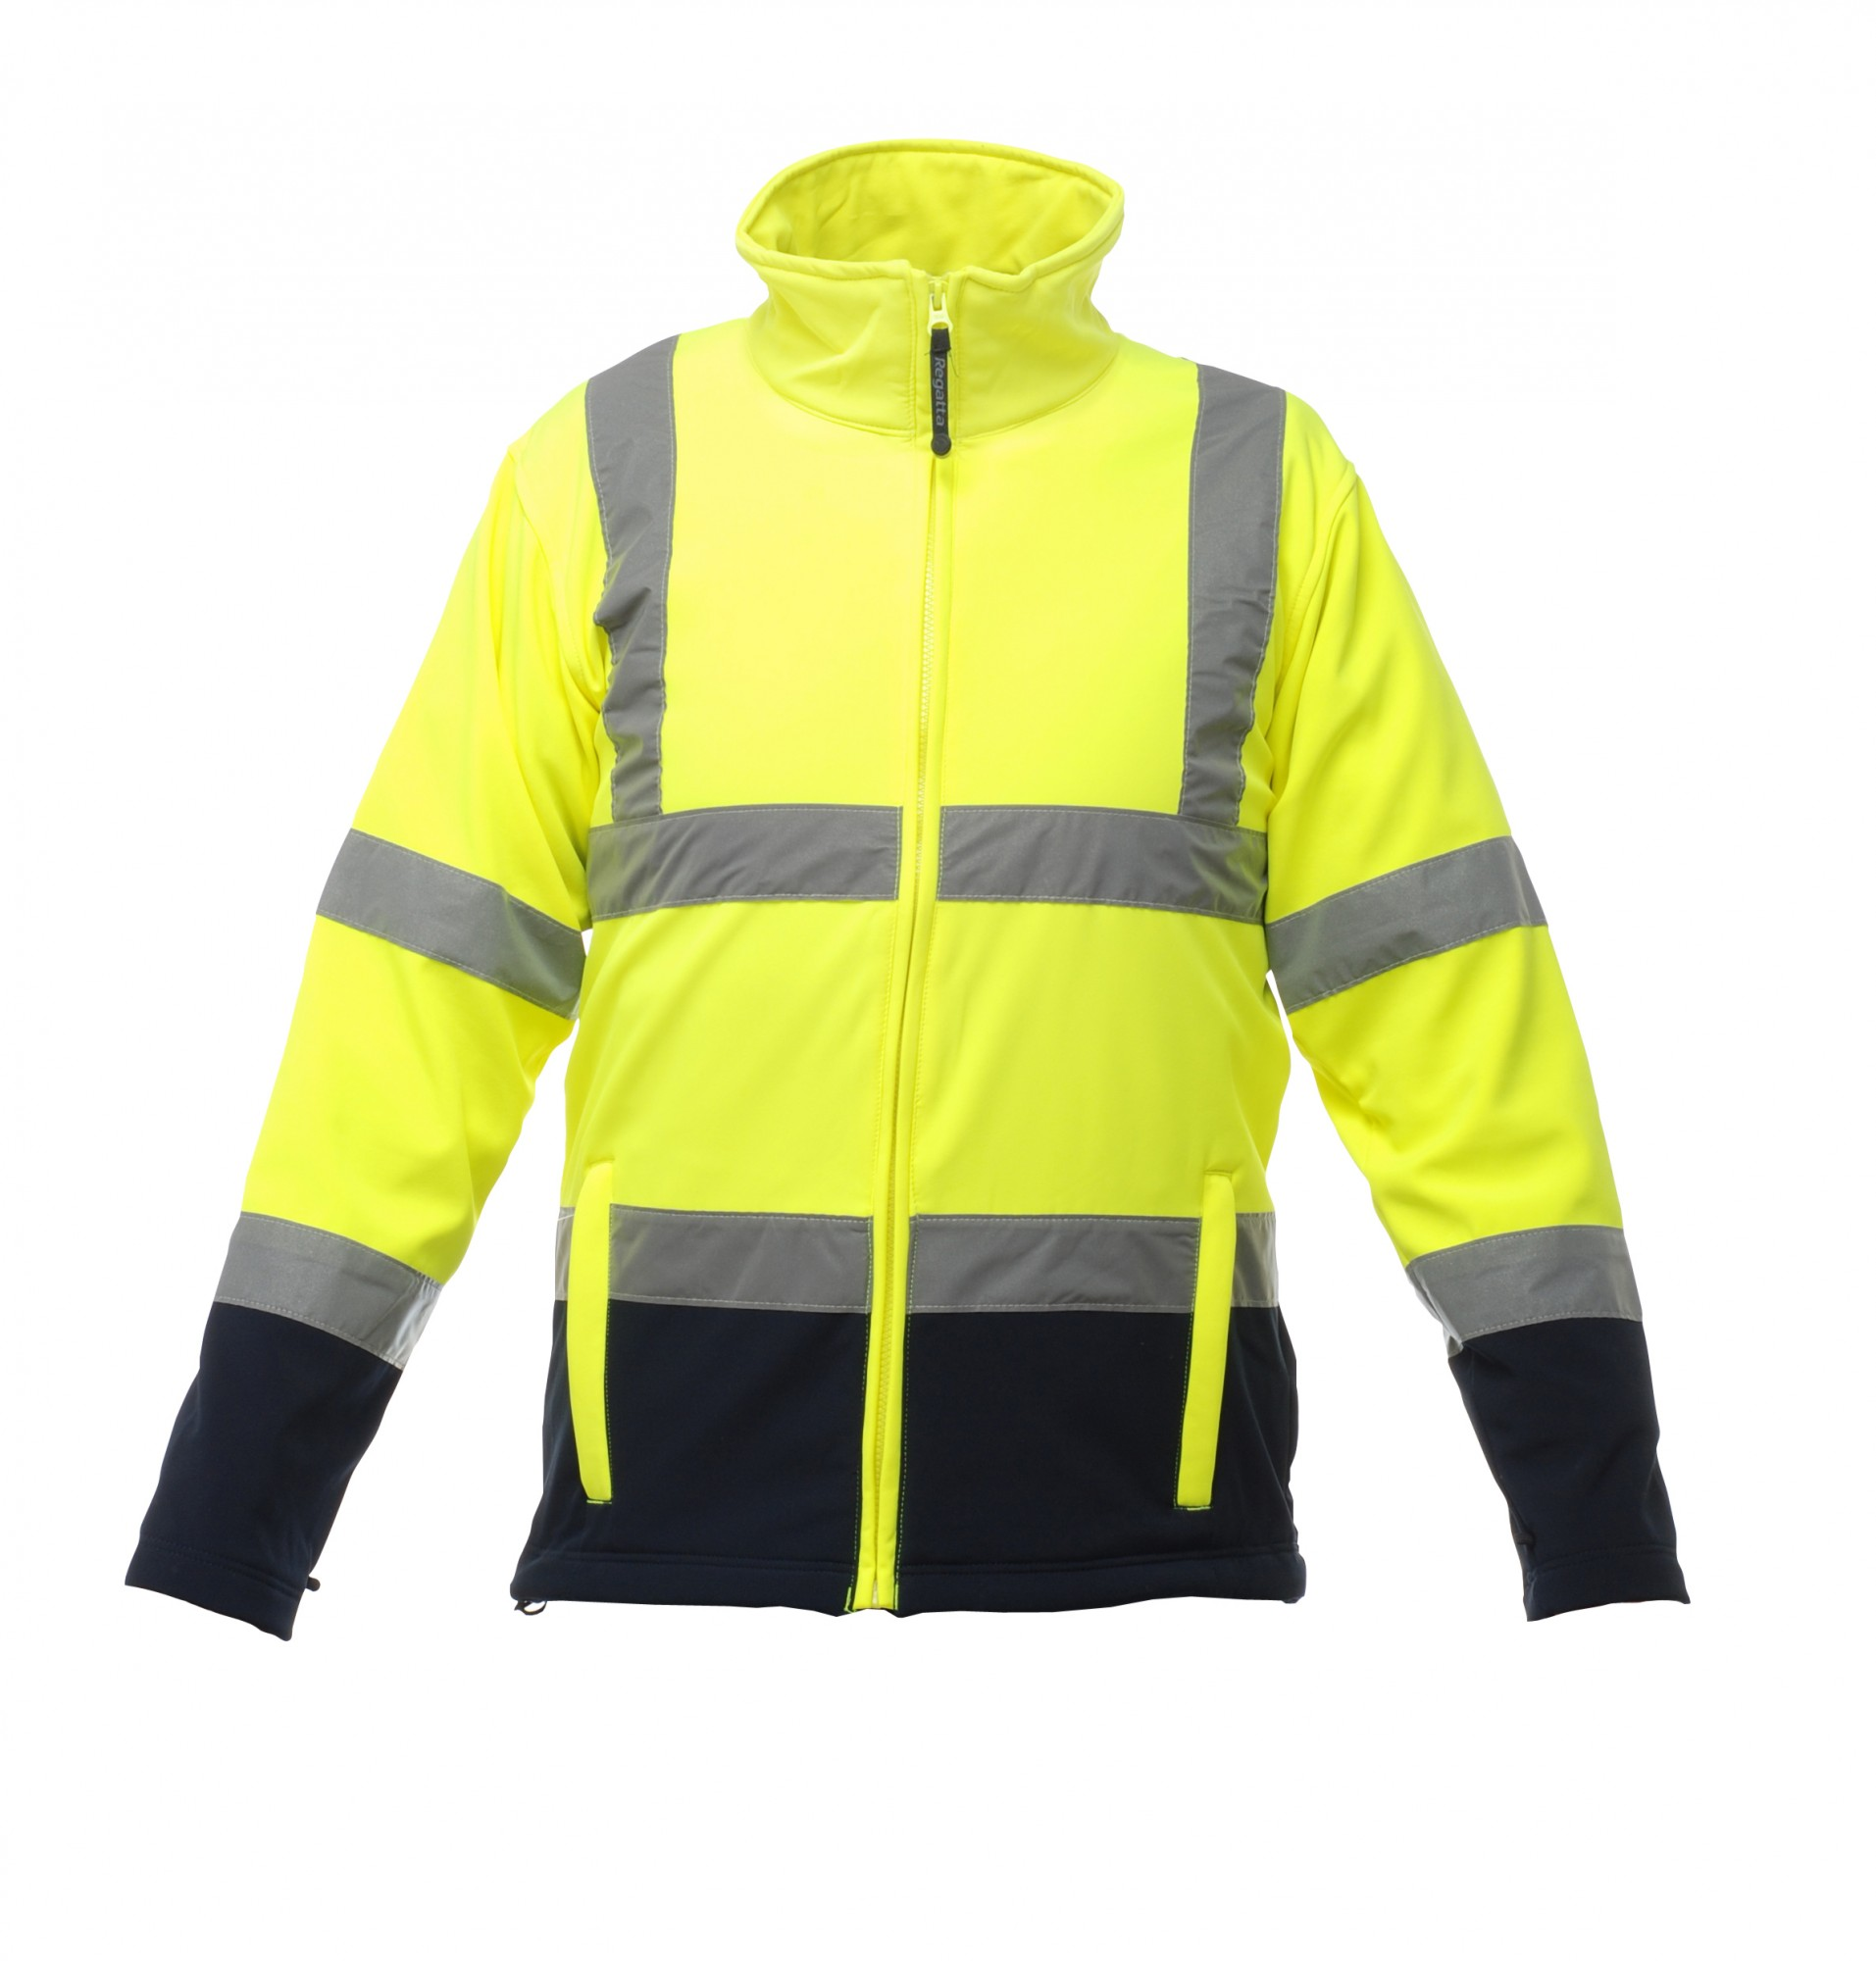 Regatta Hi-Vis Softshell Jacket